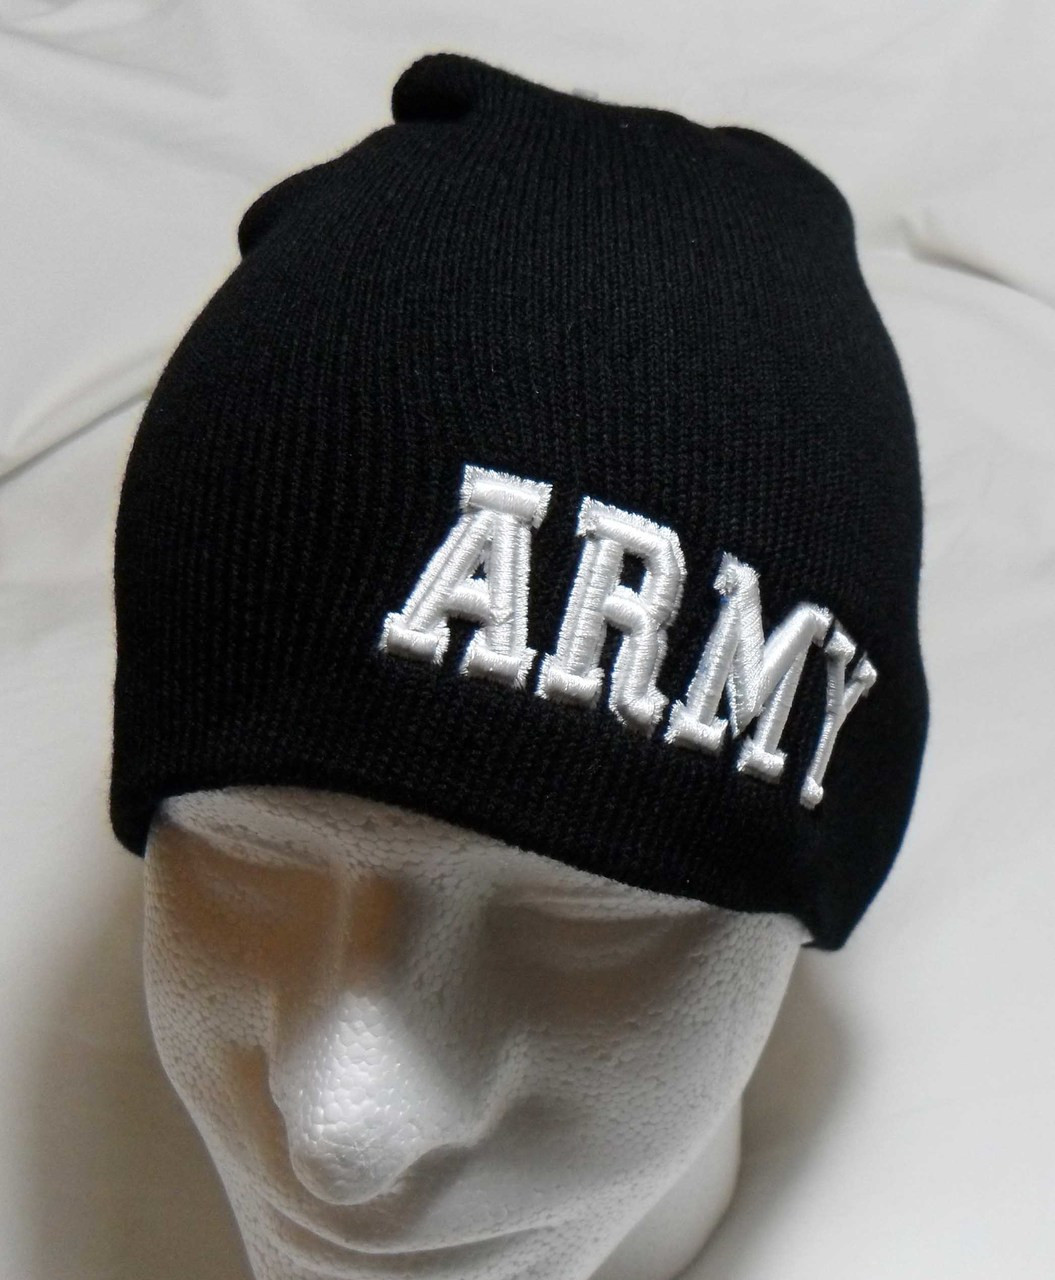 cc87bc89b23ee2 U.S. Army Logo Watch Cap Beanie Winter Ski Hat Toboggan Officially Licensed